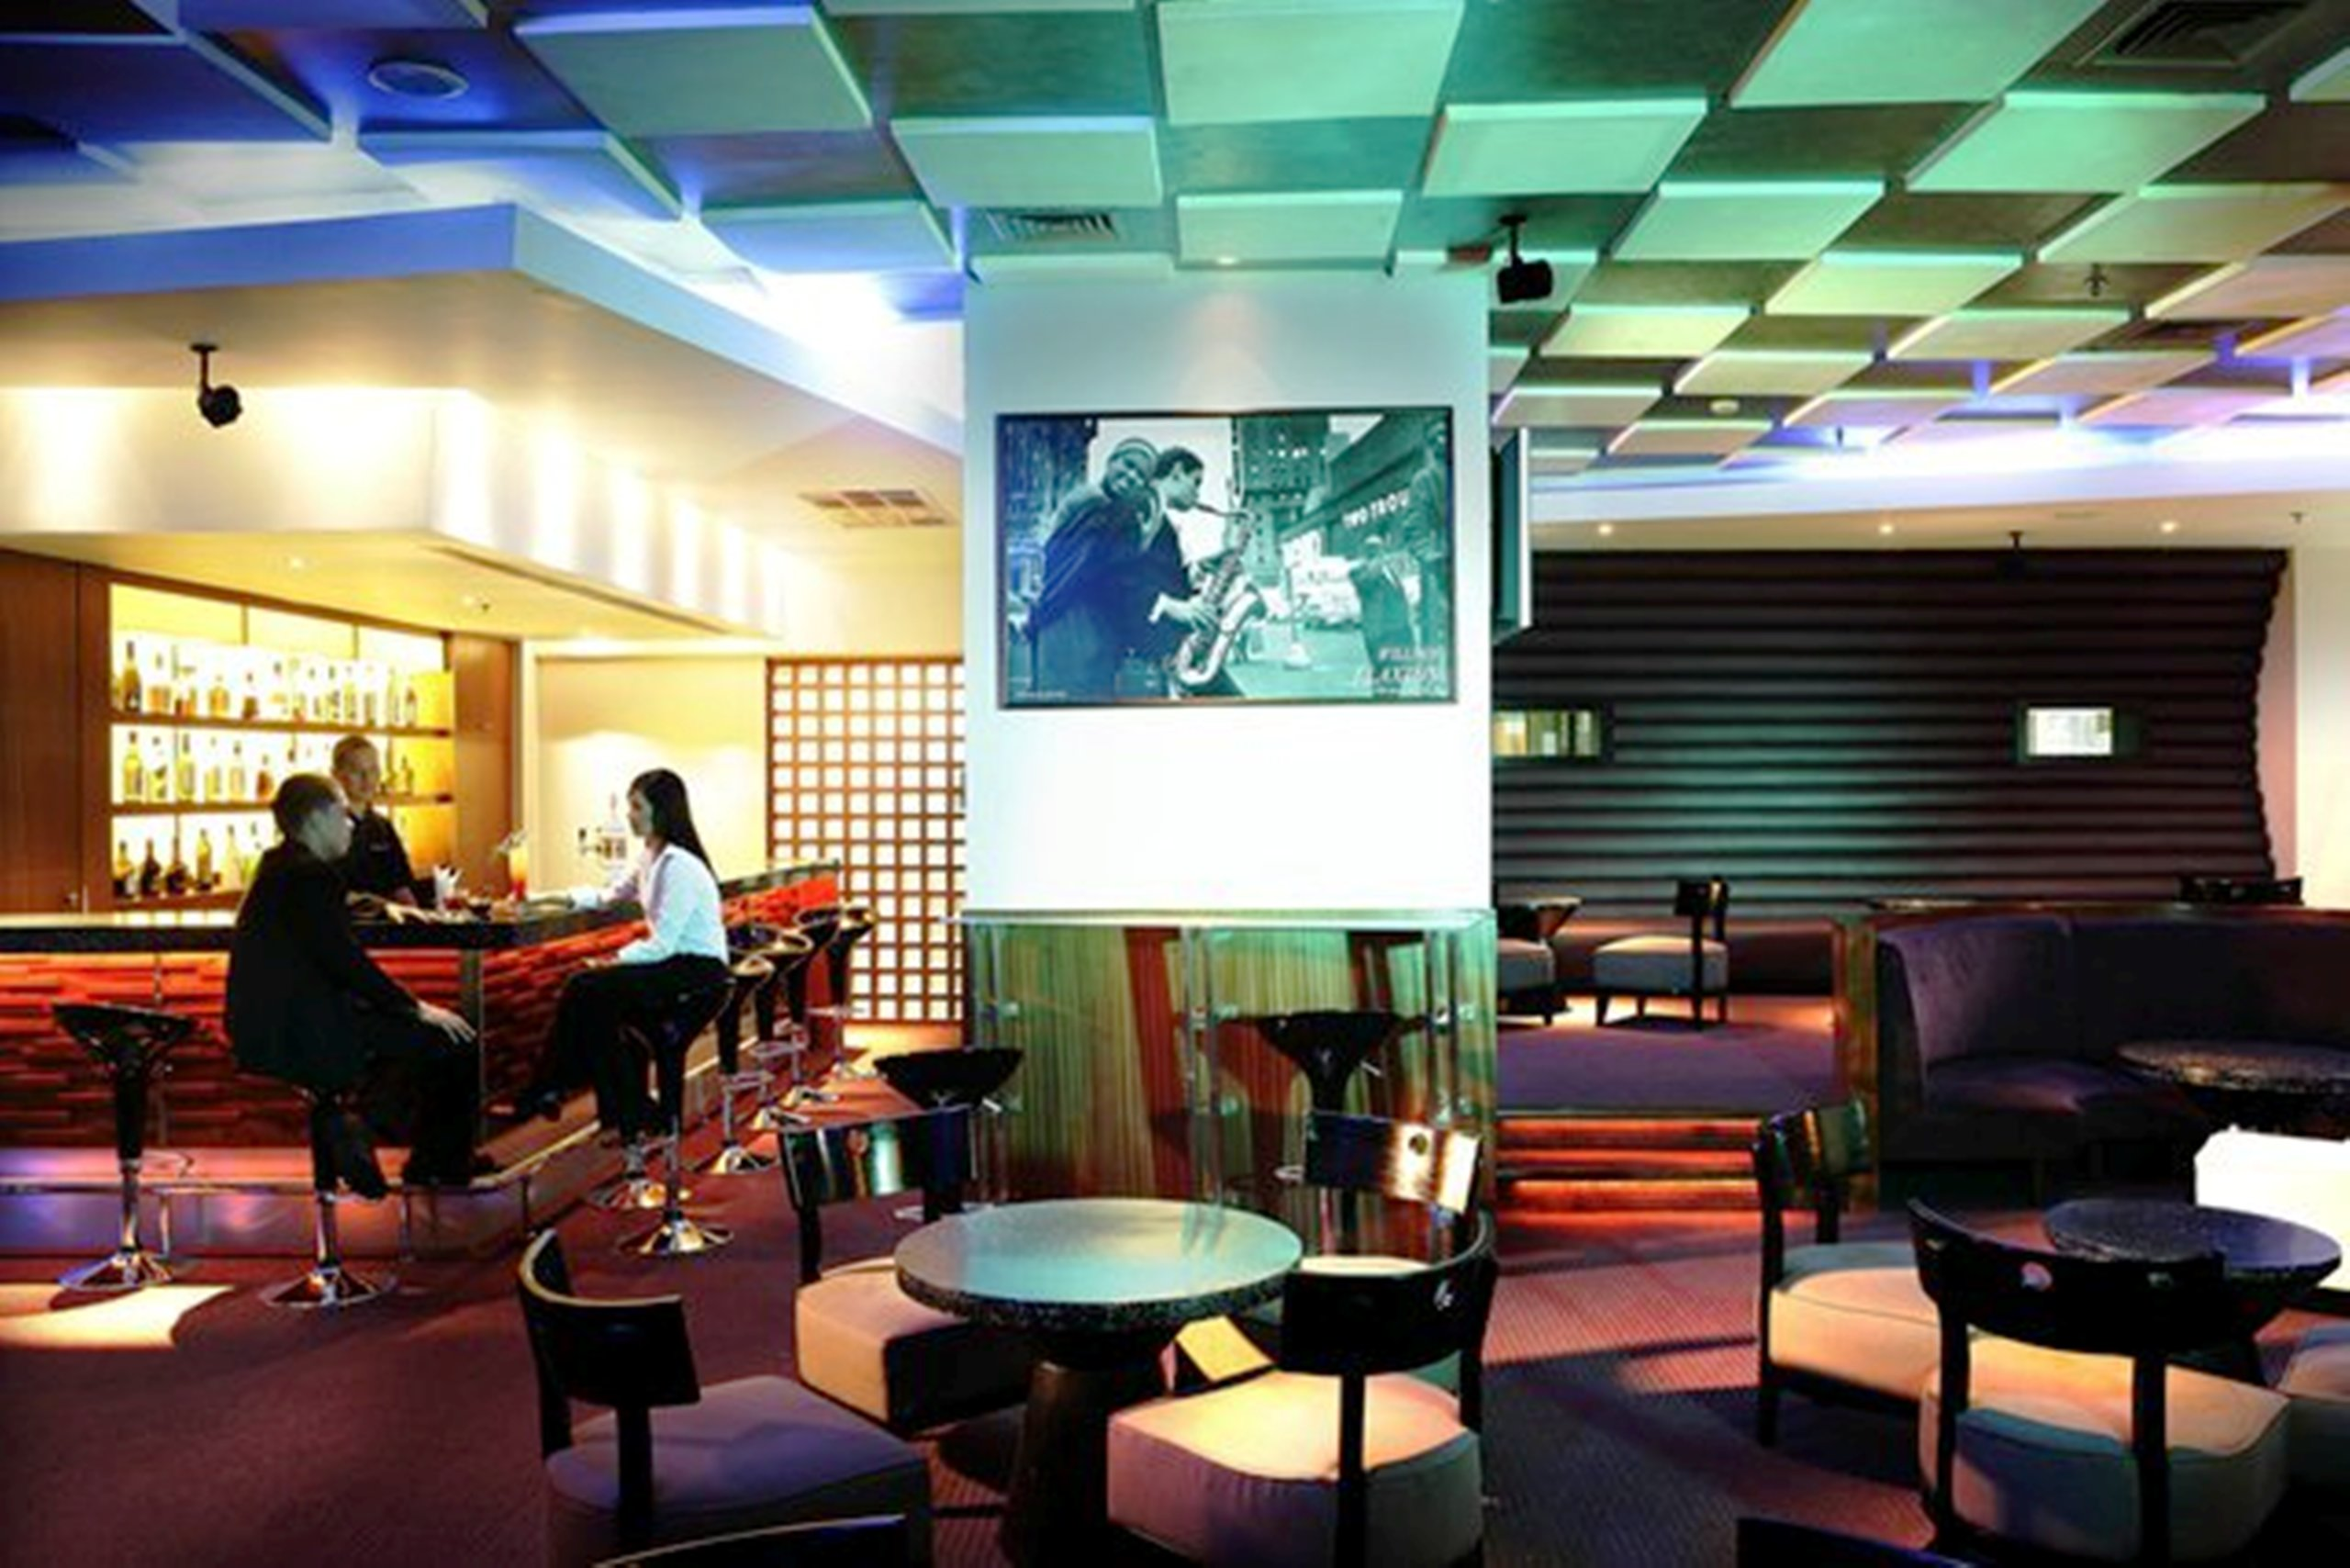 Hotel Ibis Slipi Bar/Lounge